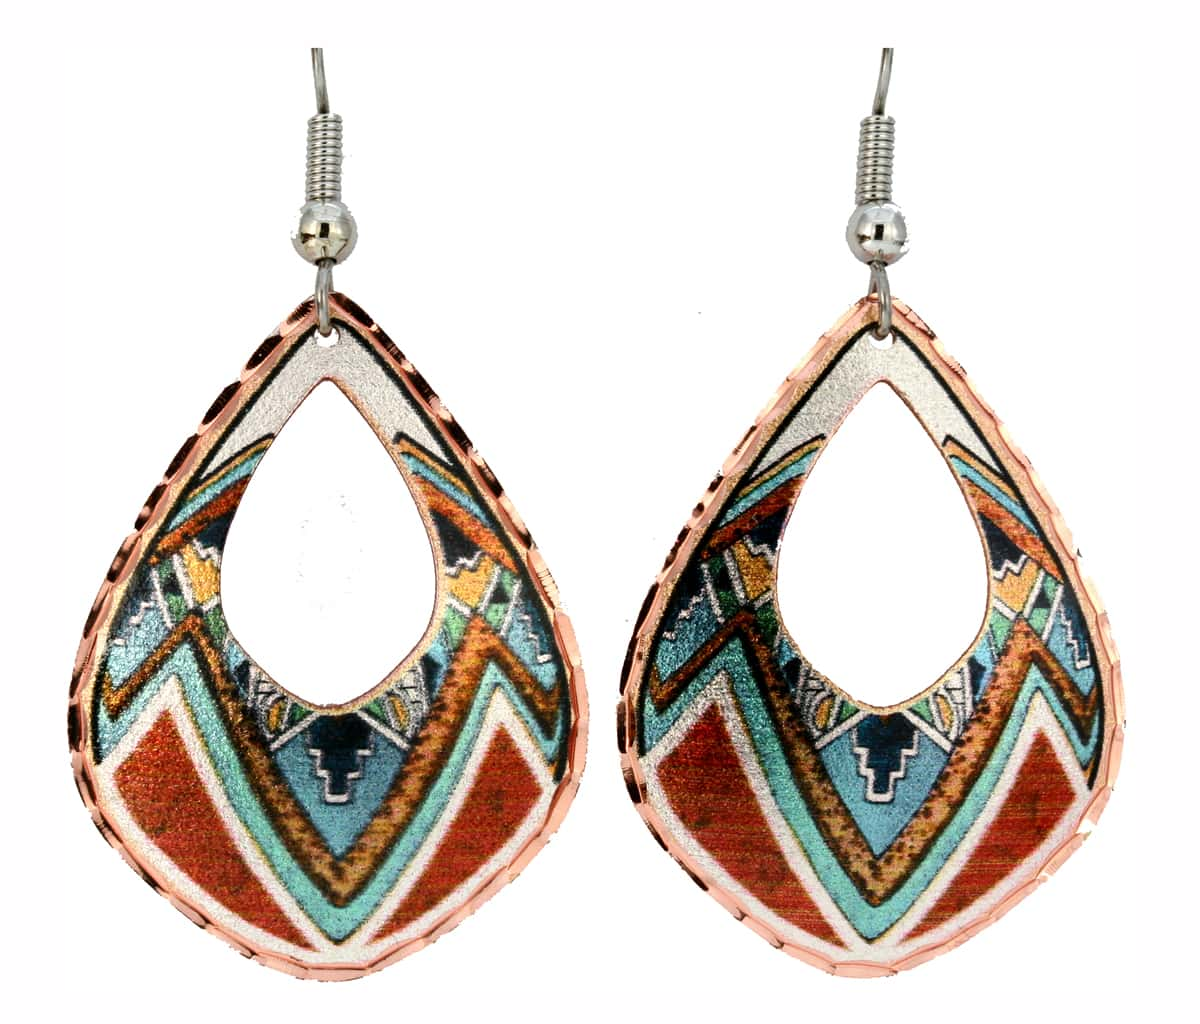 Stylish and Original Native American Earrings